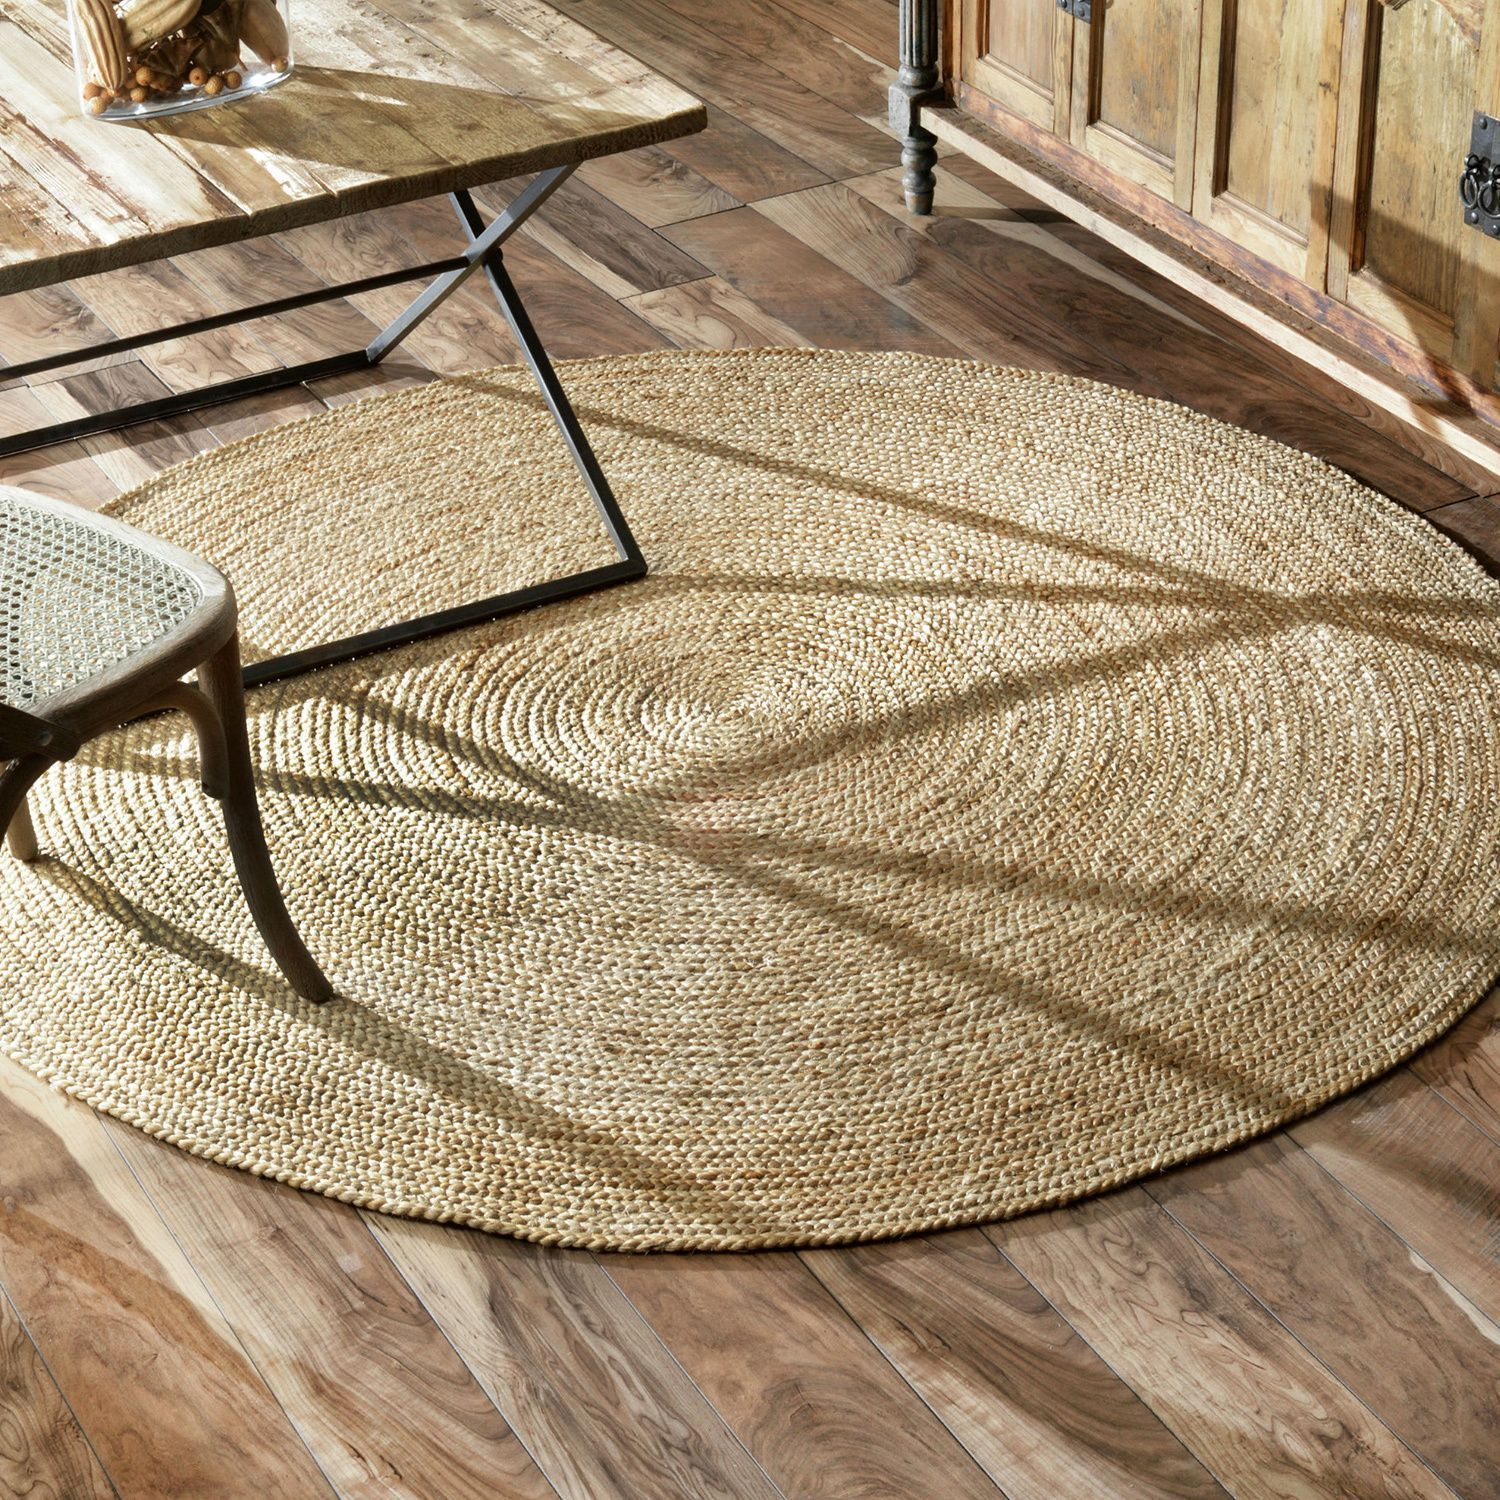 Nuloom Alexa Eco Natural Fiber Braided Reversible Jute Rug 8 Round Brown Size X